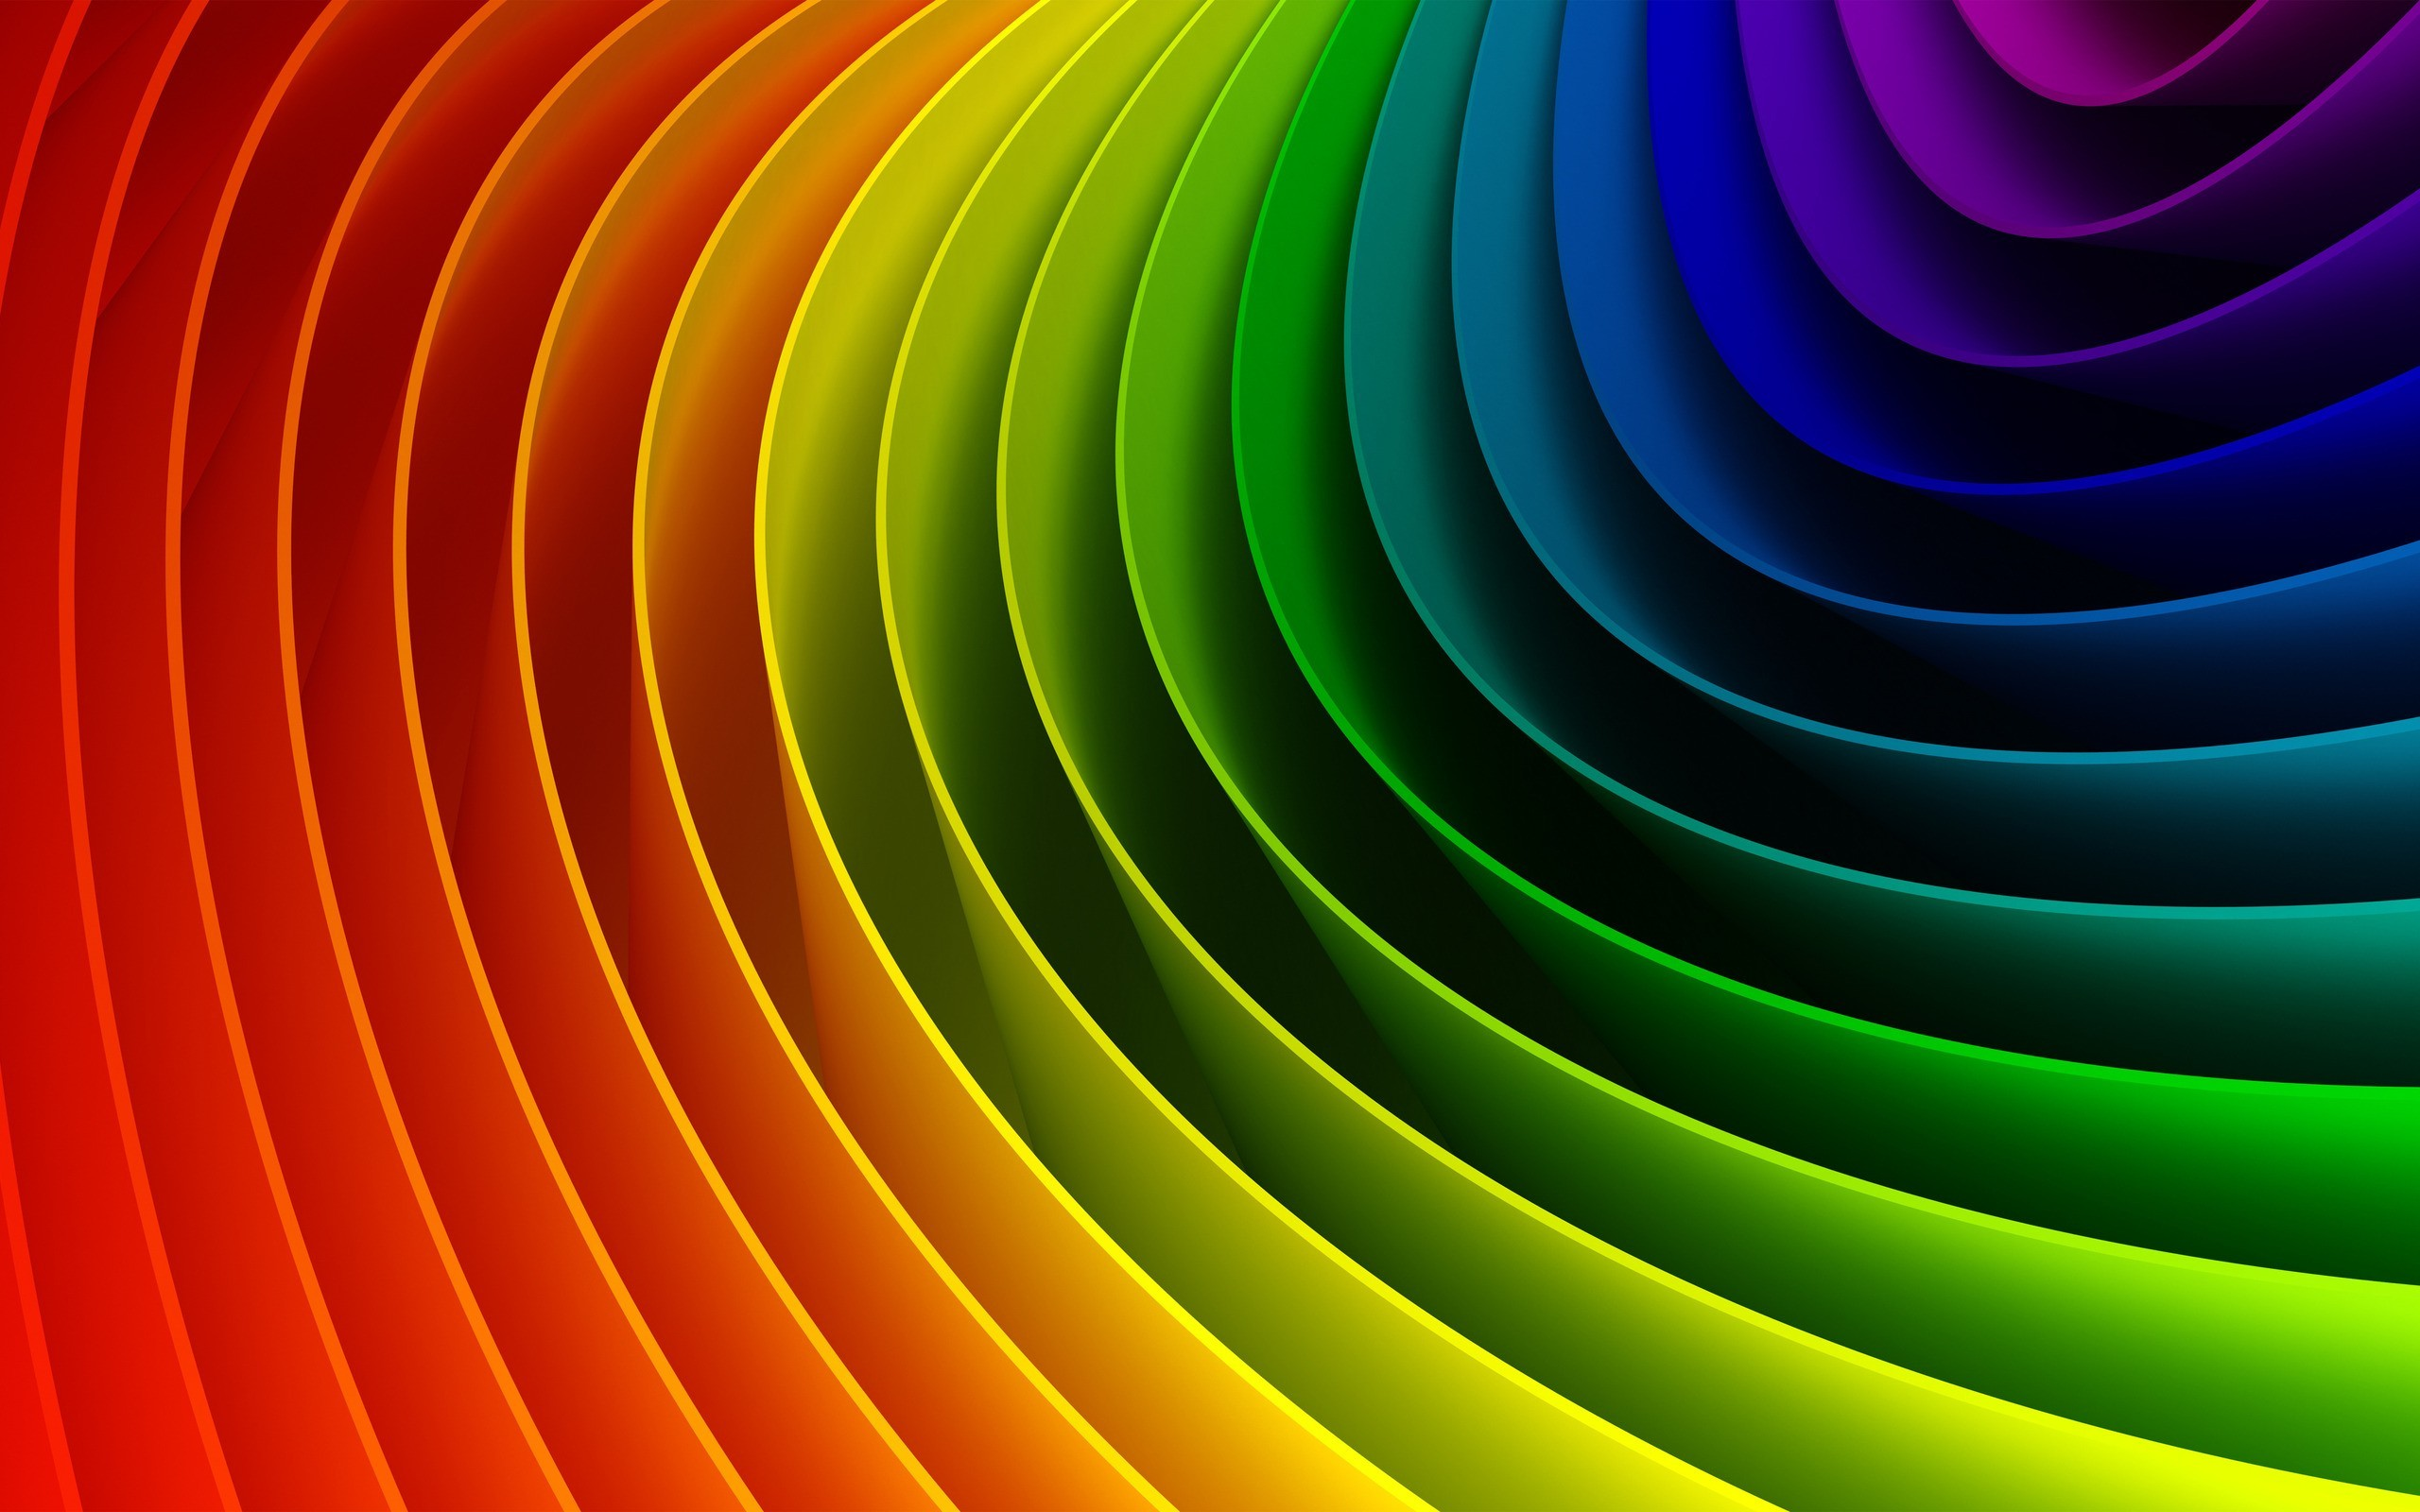 Curved colorful rainbow wallpapers | Curved colorful ...